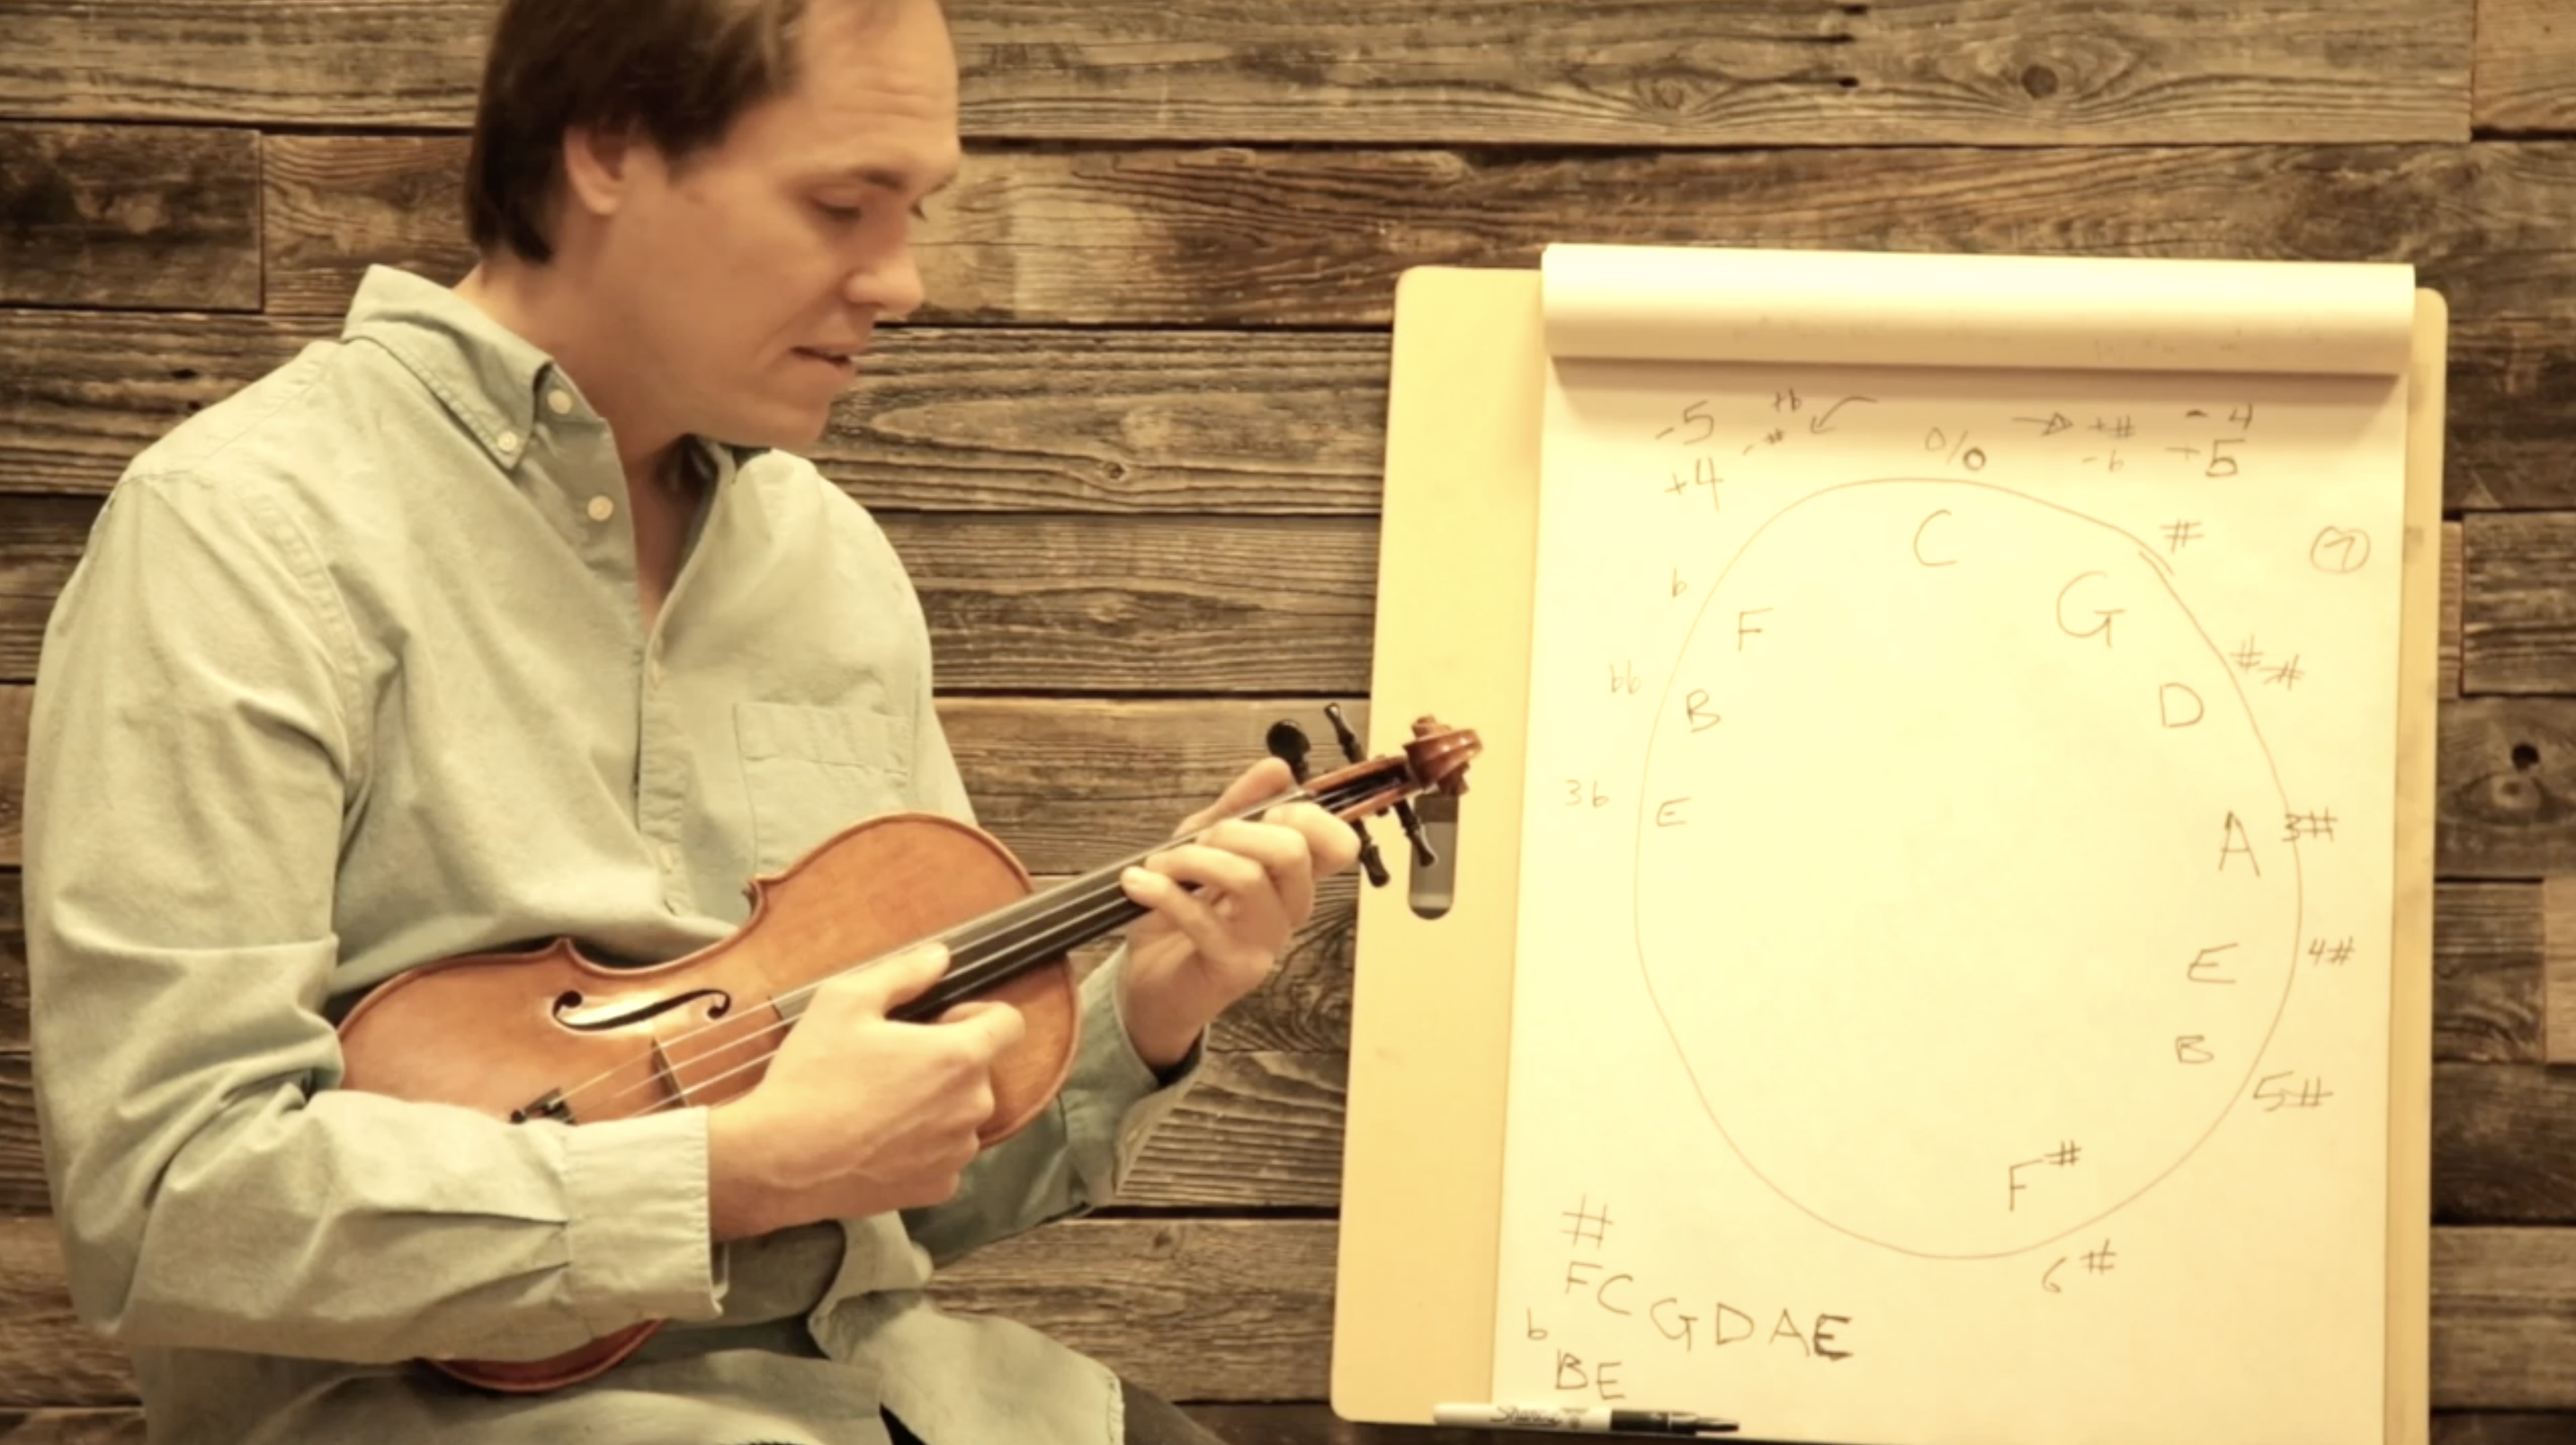 The Circle of Fifths - Practical Music Theory